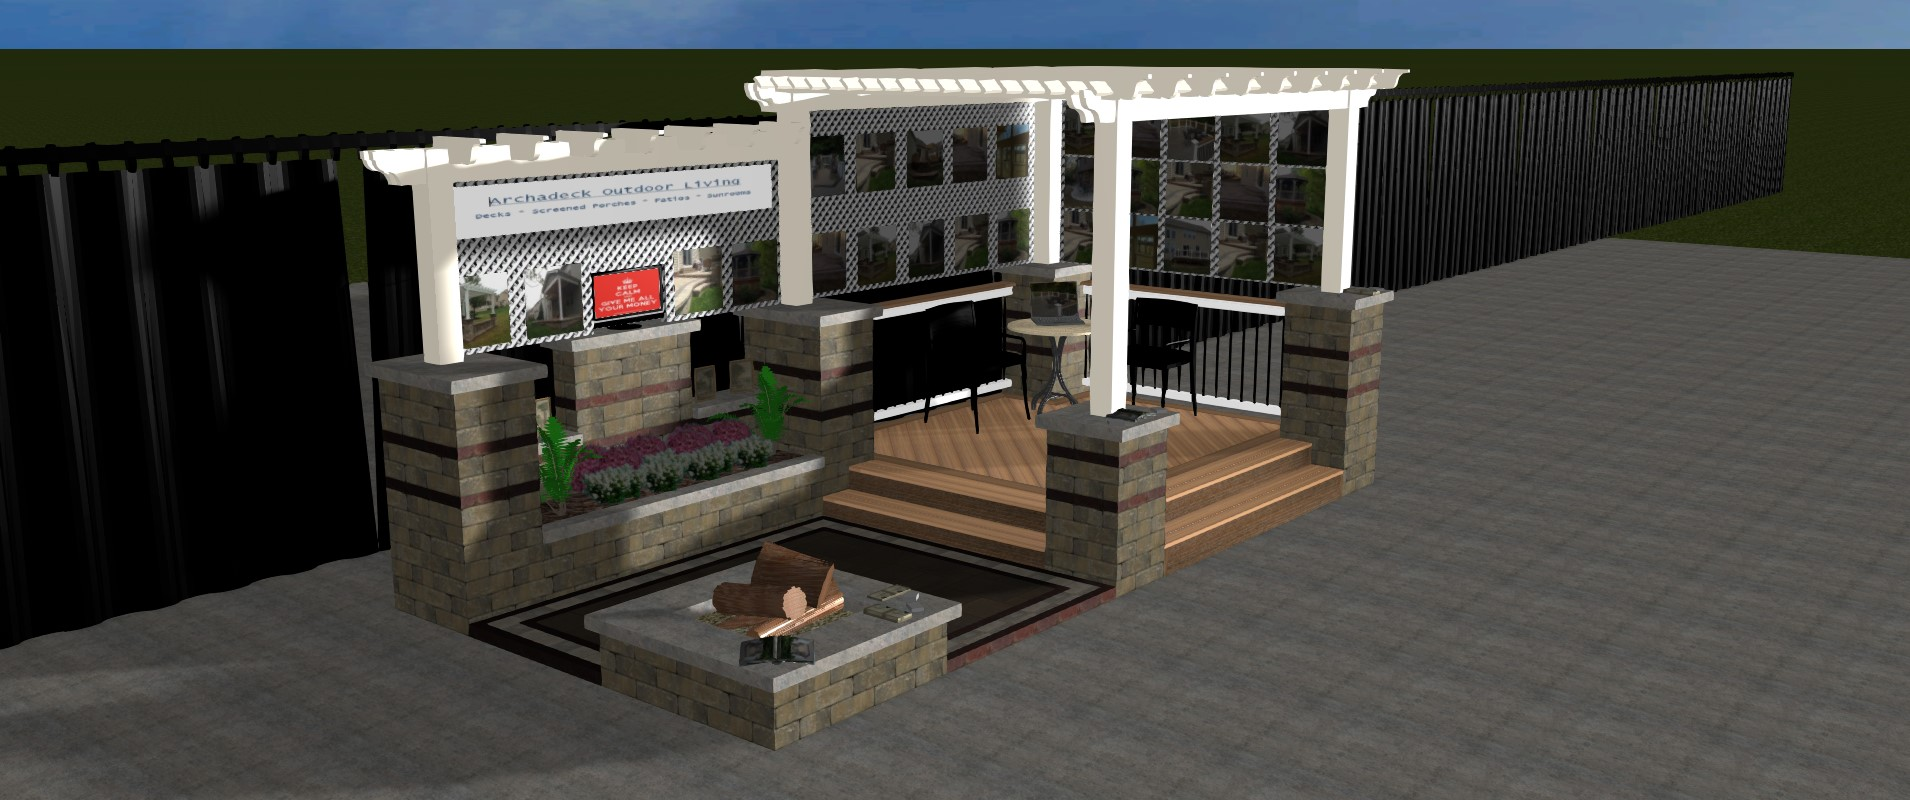 A Look At Our New Booth For The Columbus Dispatch Home And Garden Show